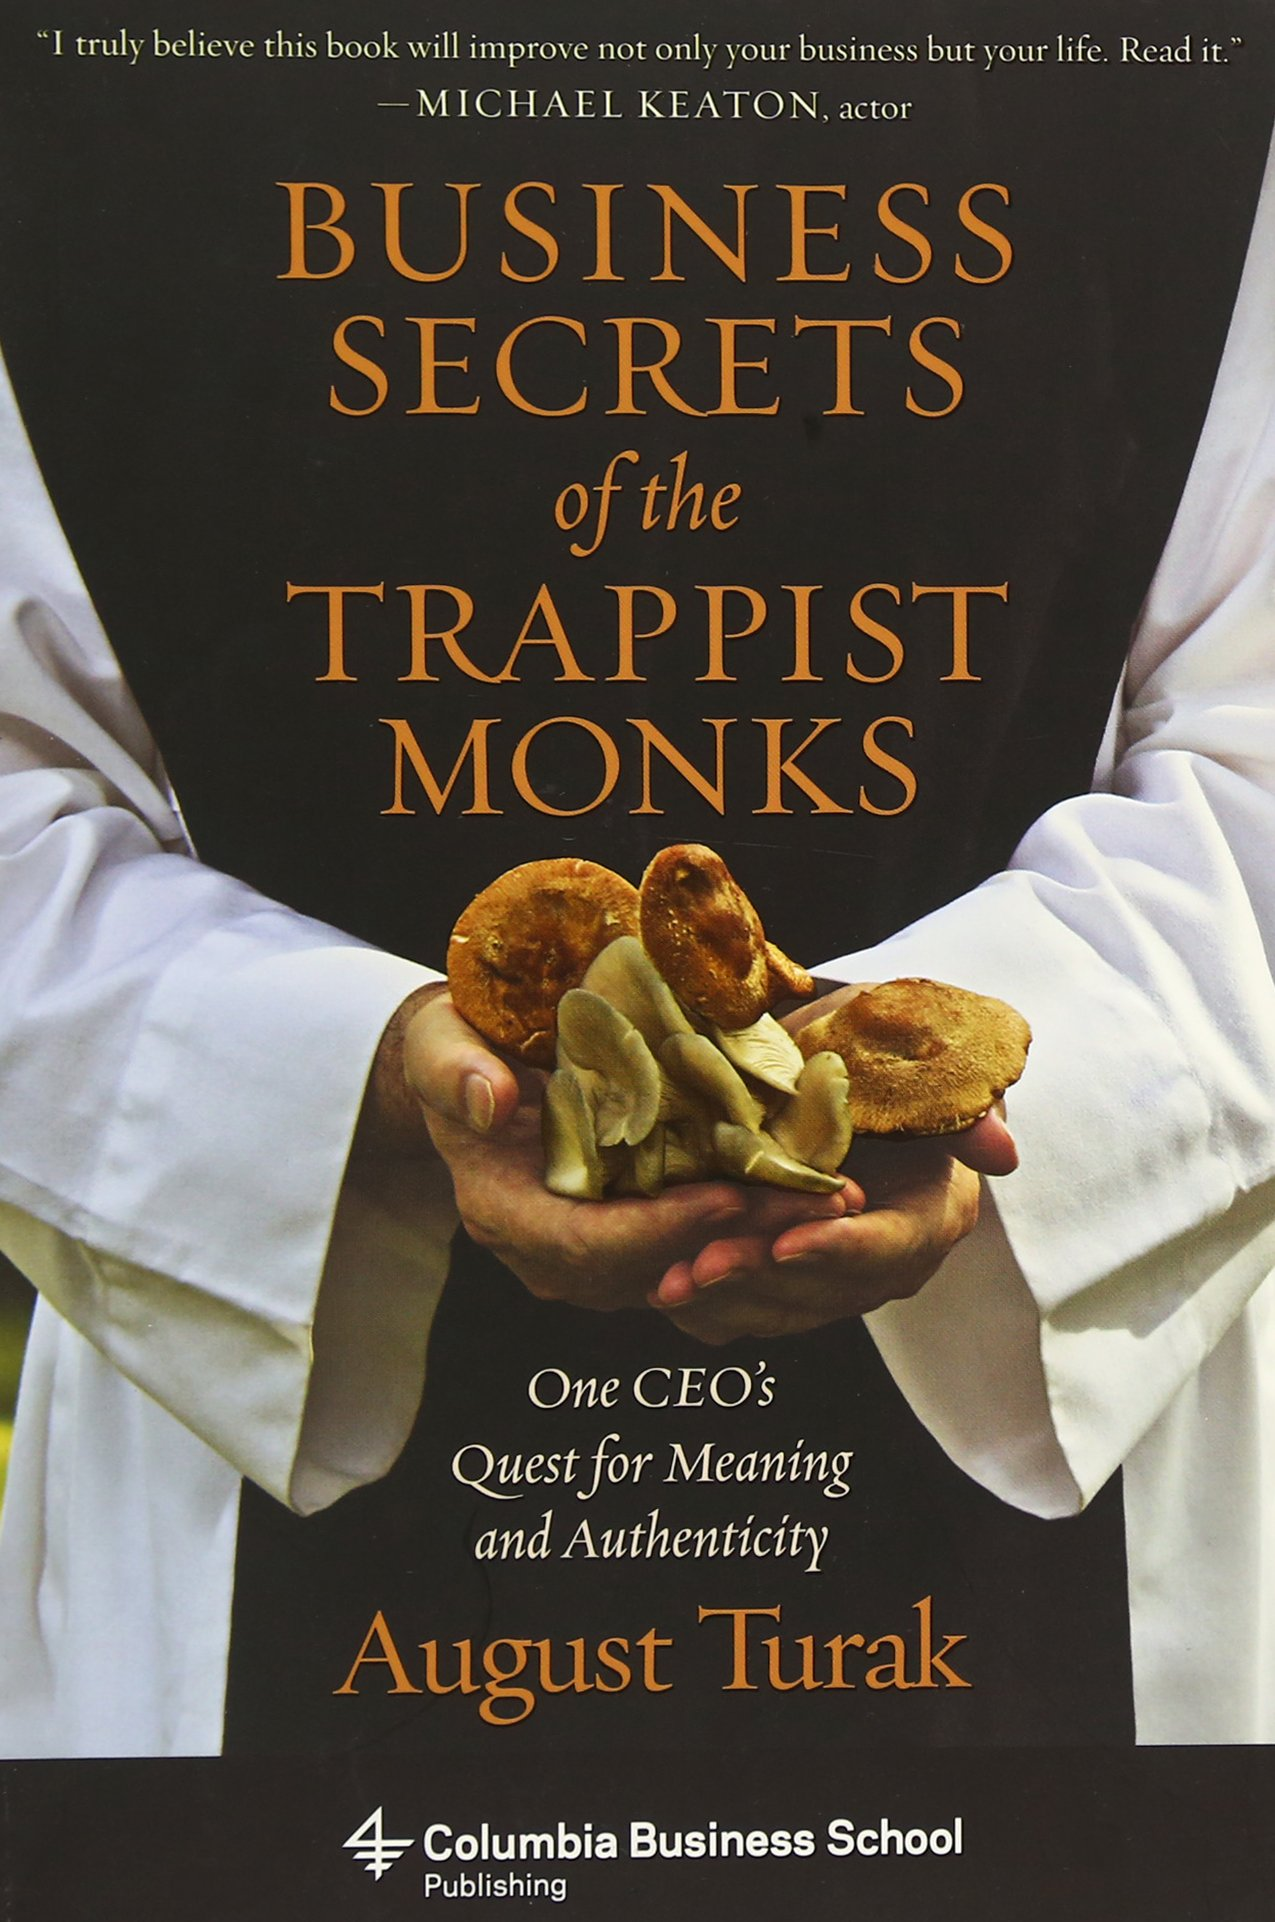 Image result for business secrets of the trappist monks